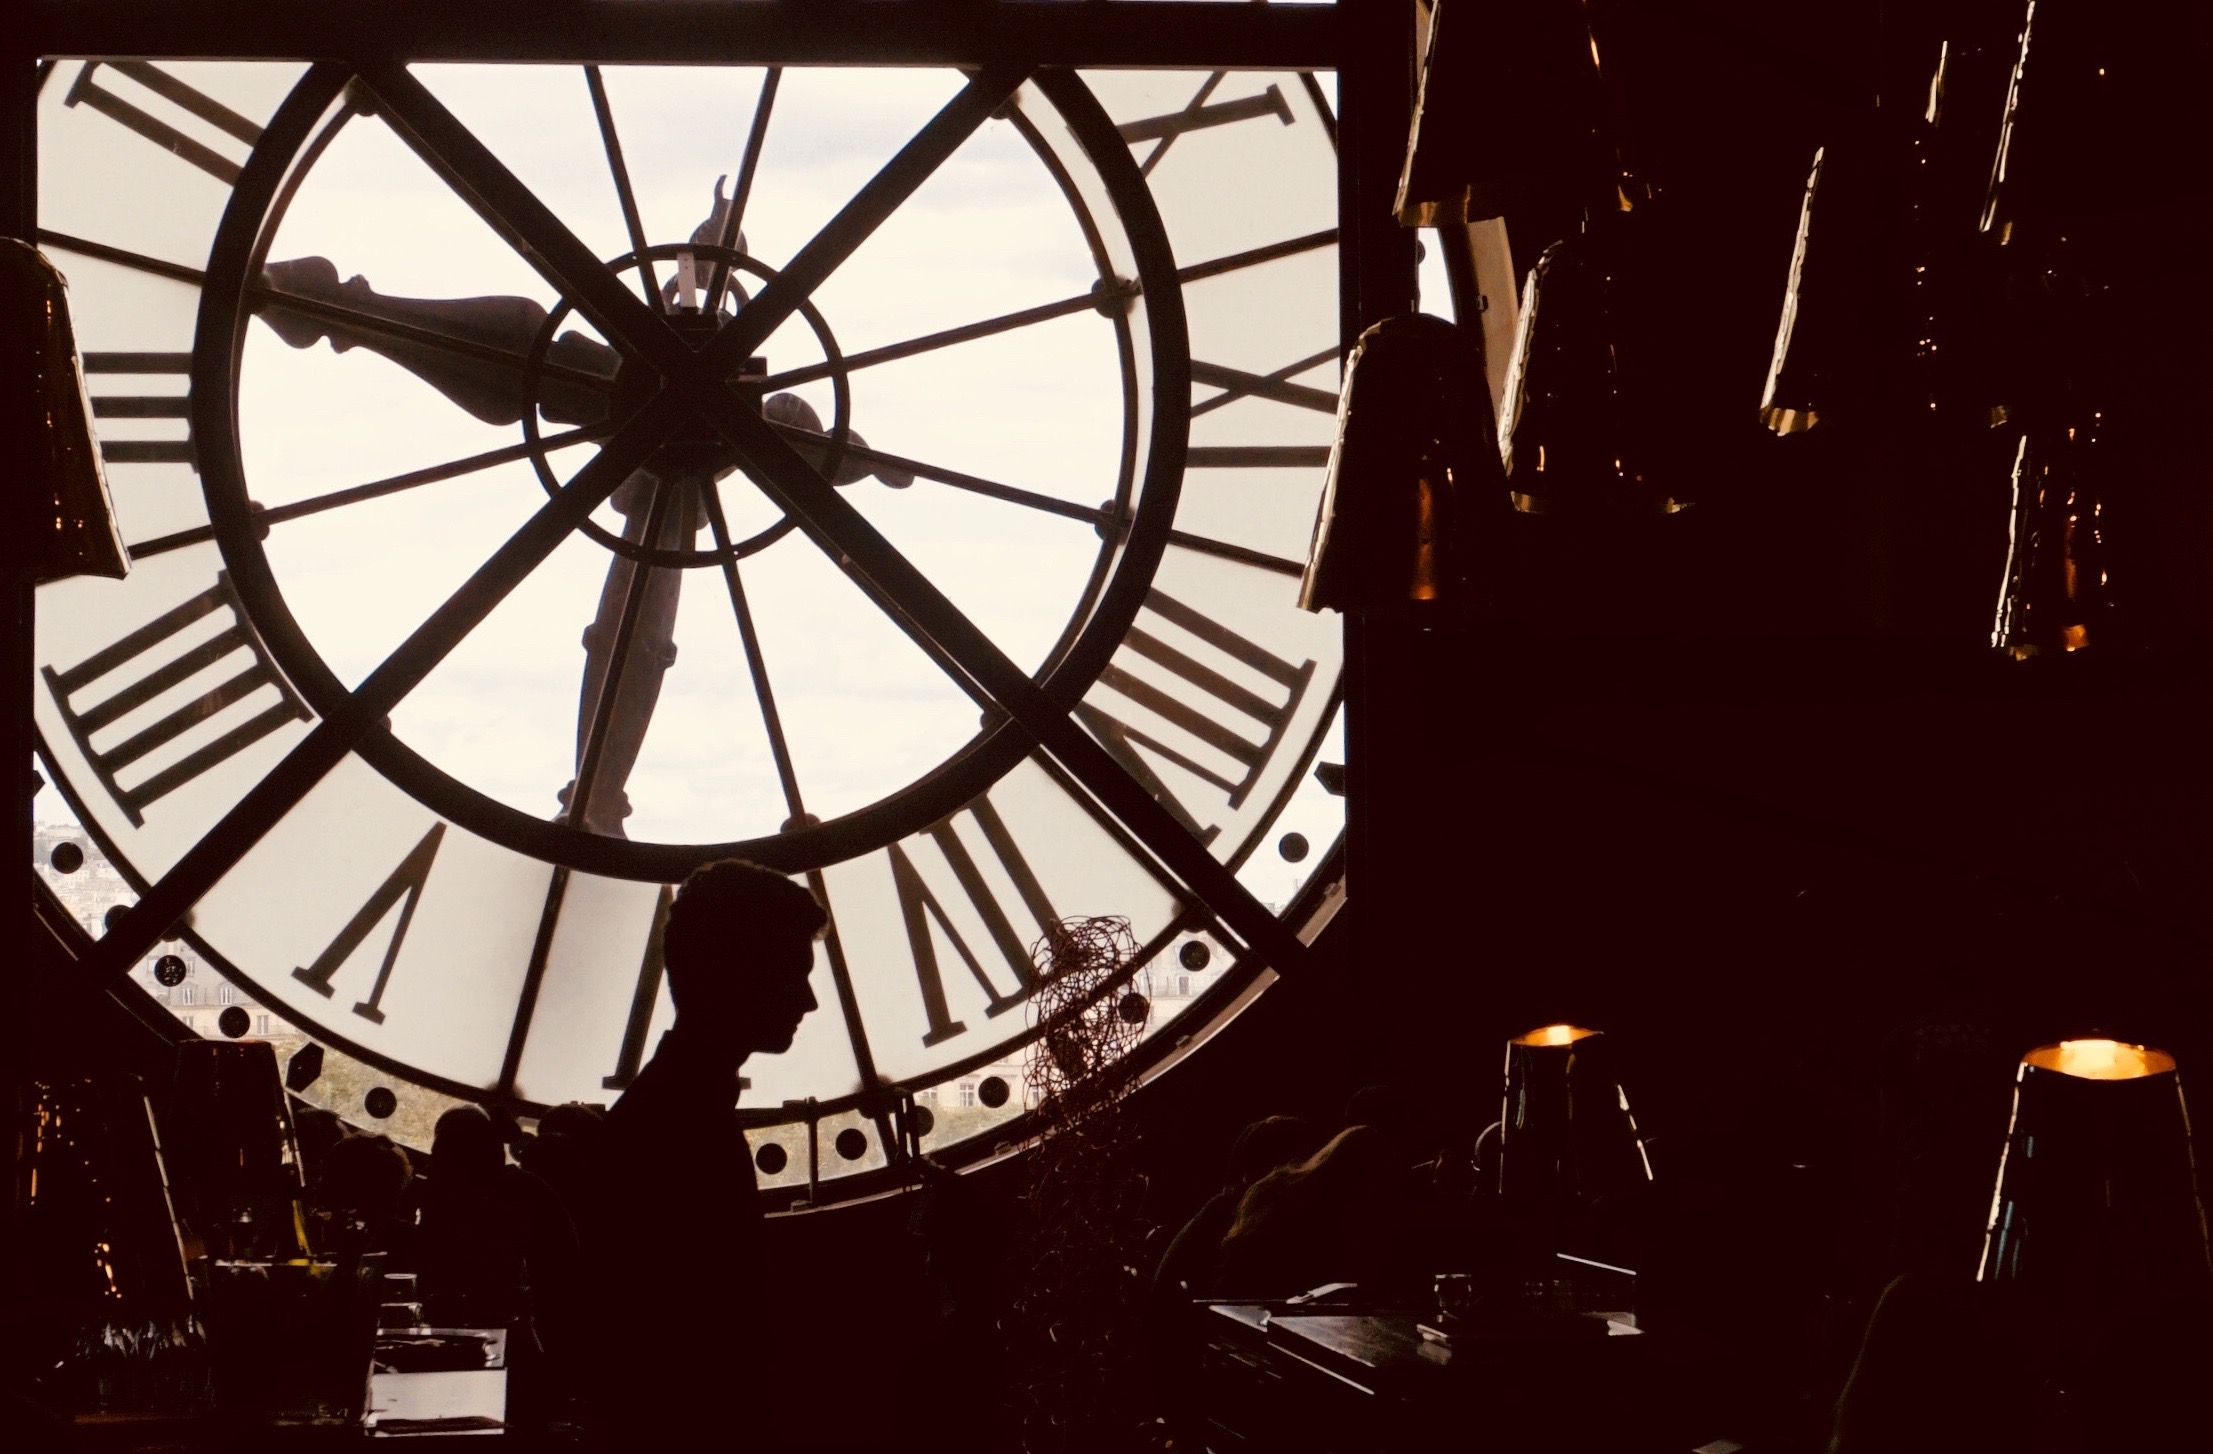 Musée d'Orsay: Sony α6000